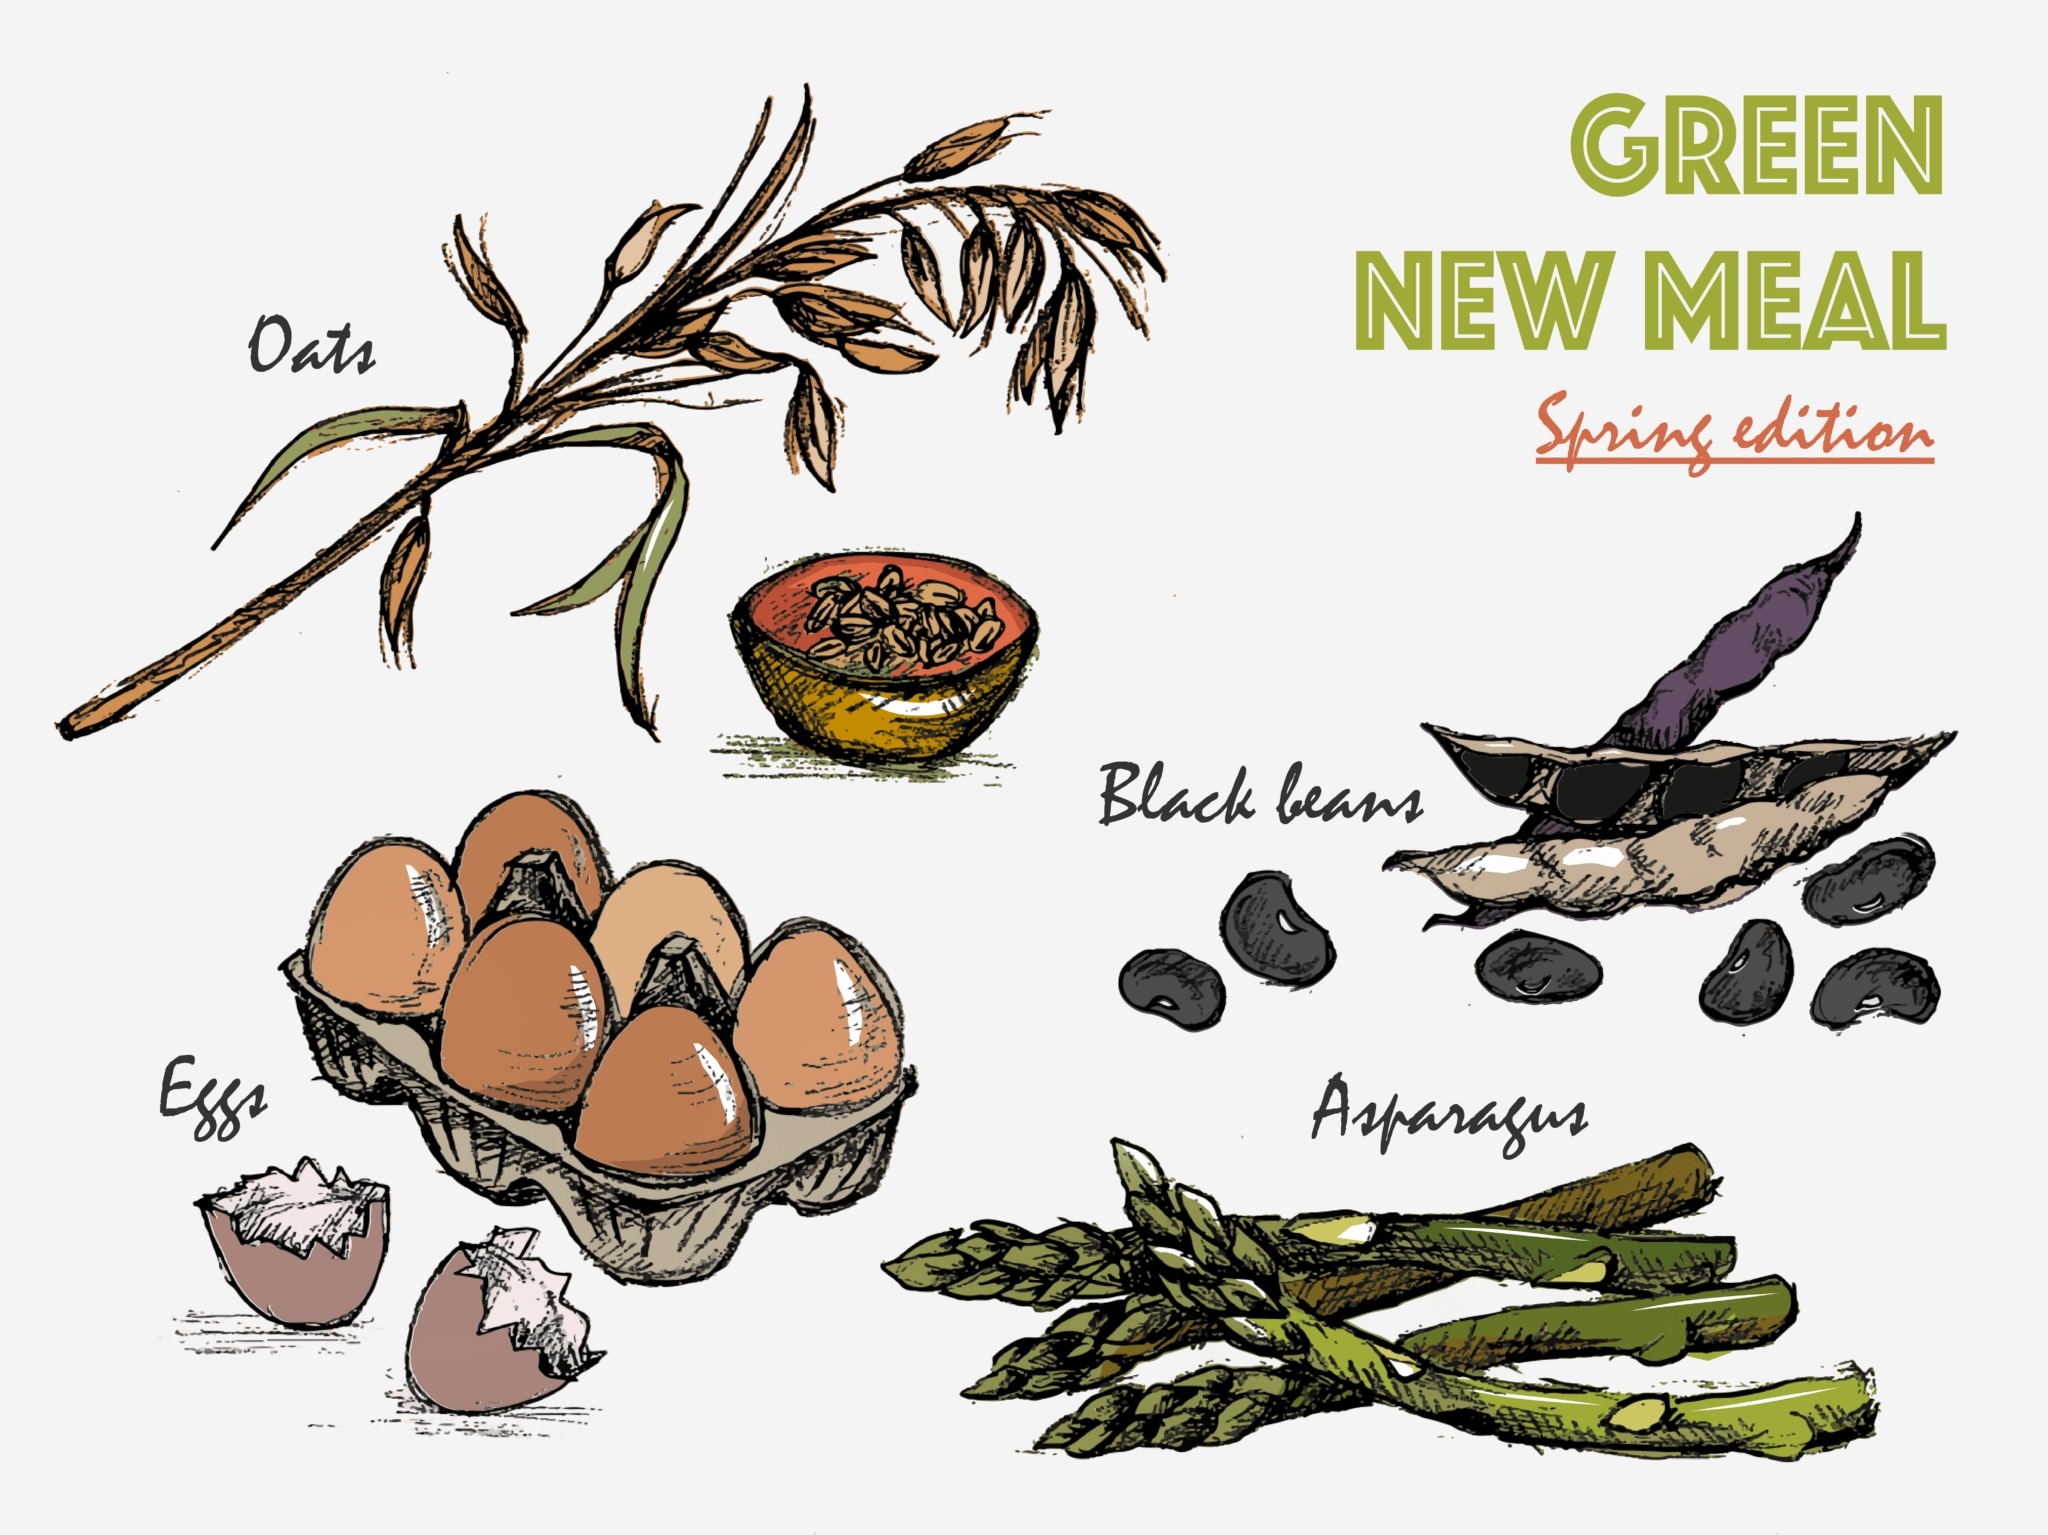 Green New Meal